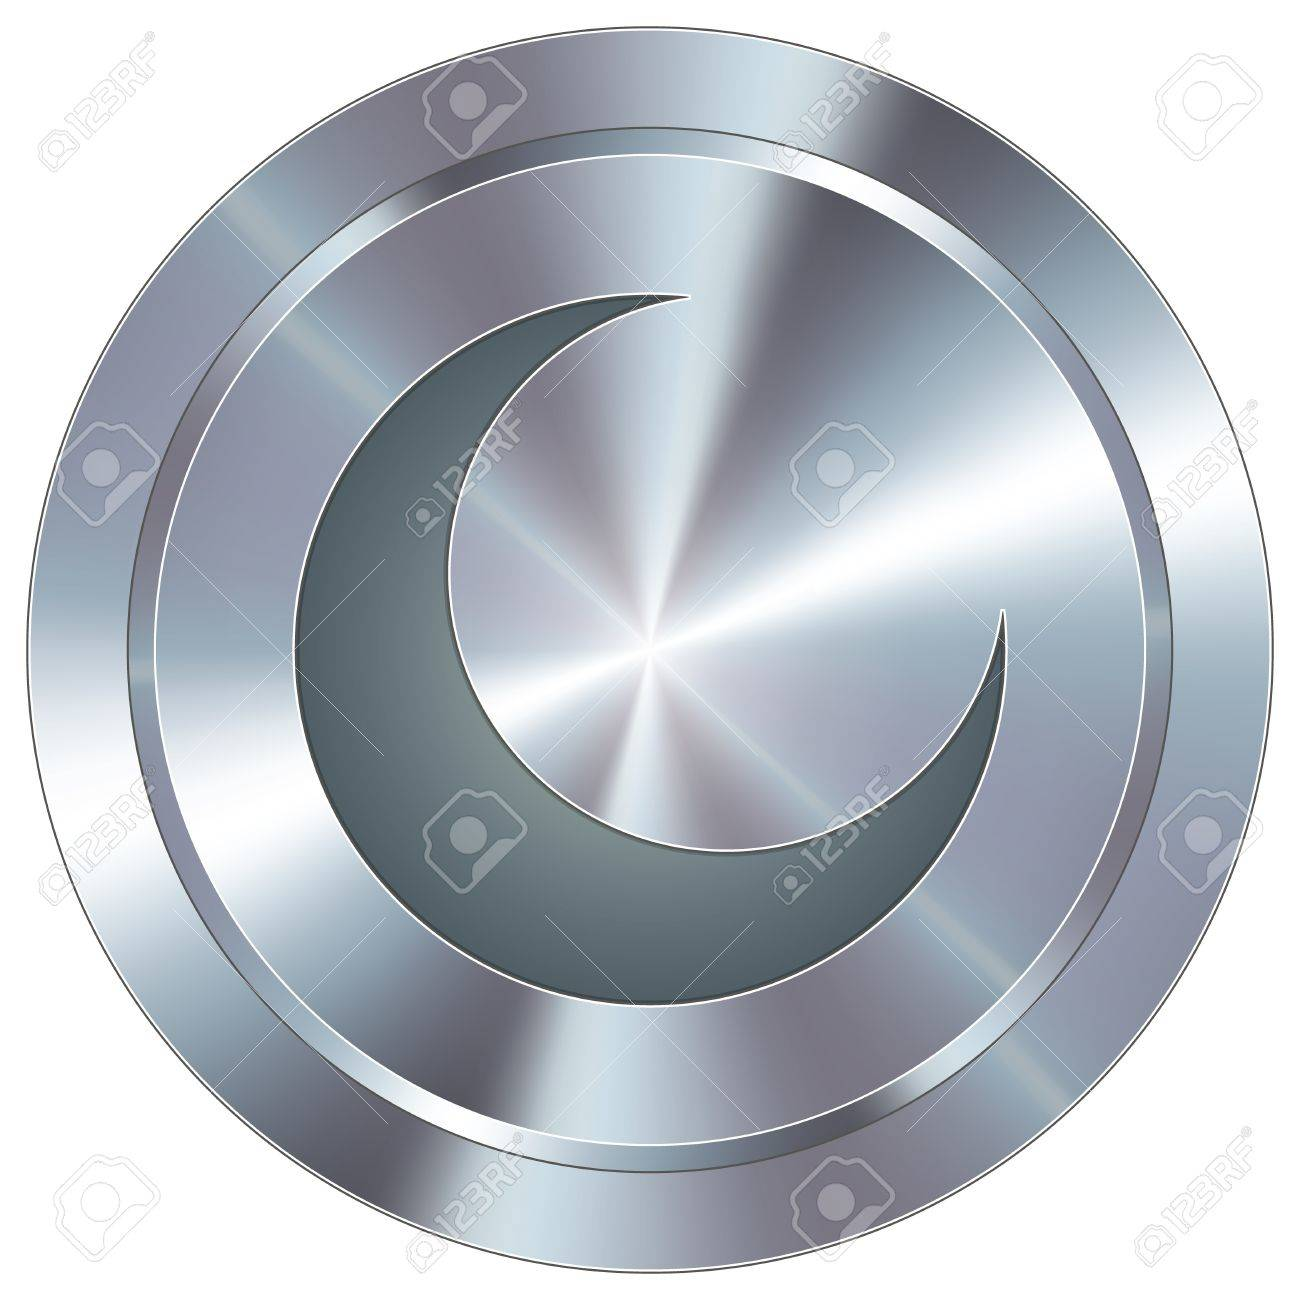 Crescent moon icon on round stainless steel modern industrial button Stock Vector - 14707729